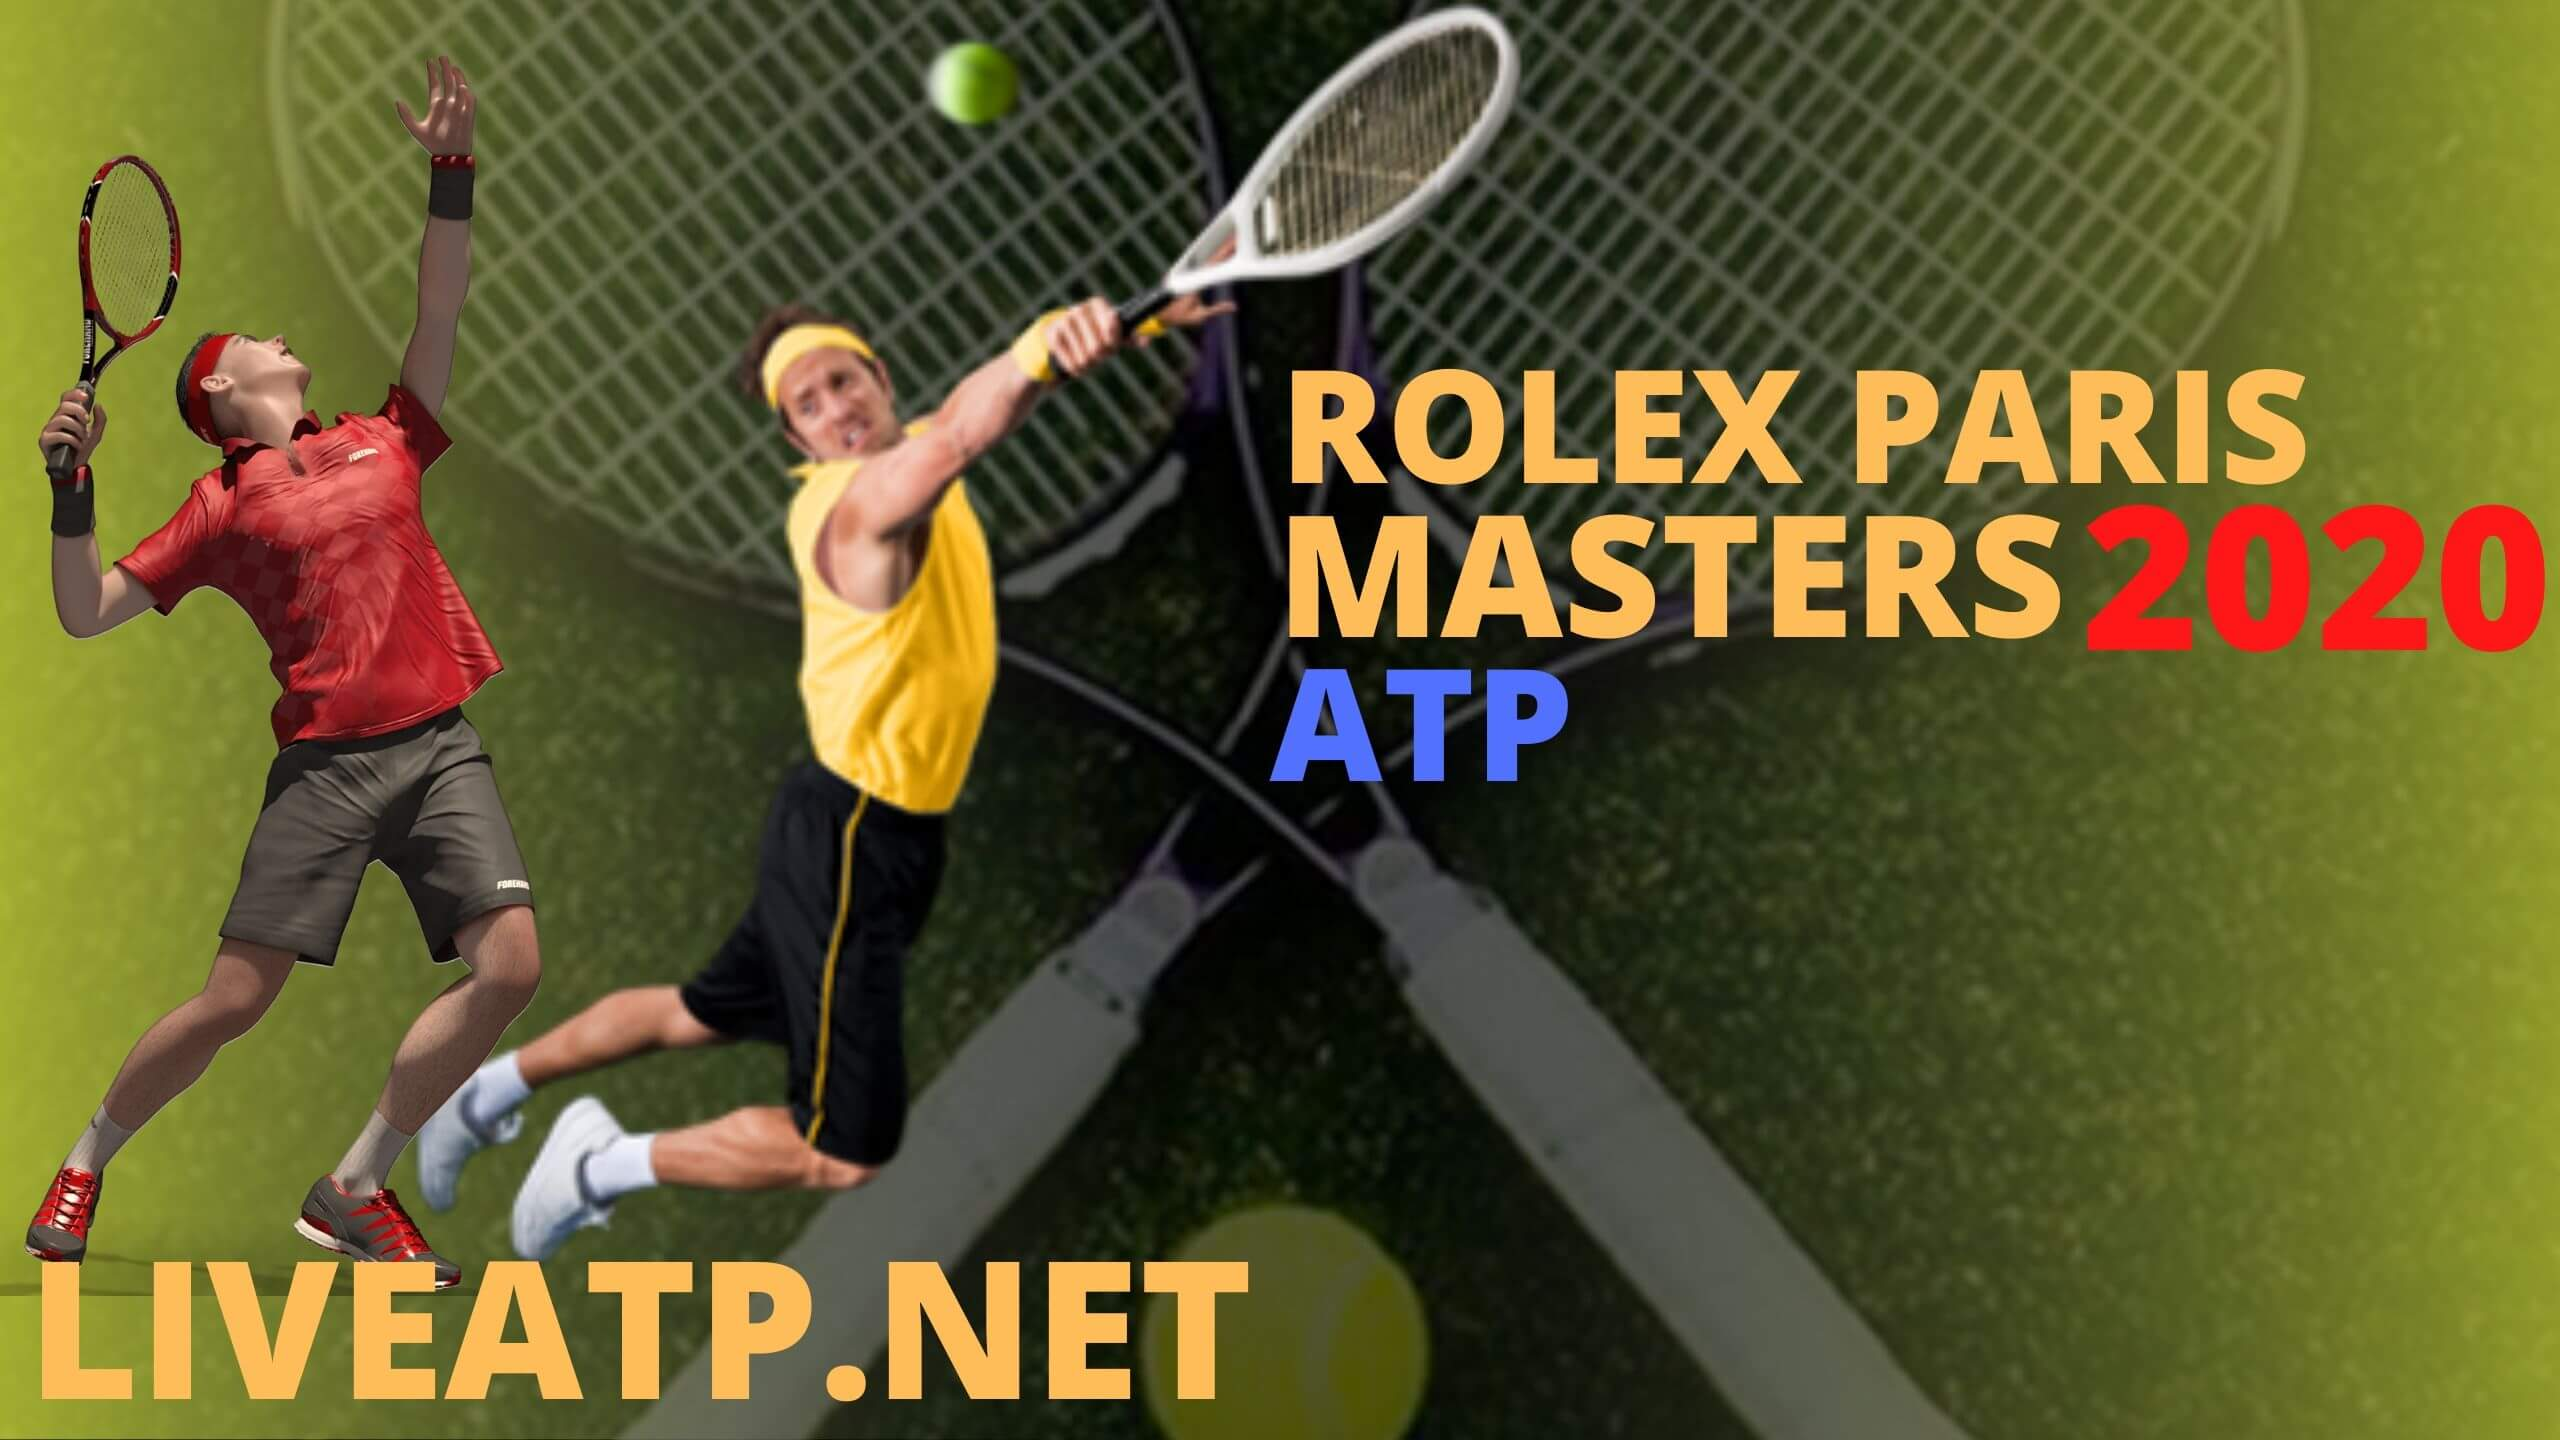 Rolex Paris Masters Live Stream 2020 | Day 5